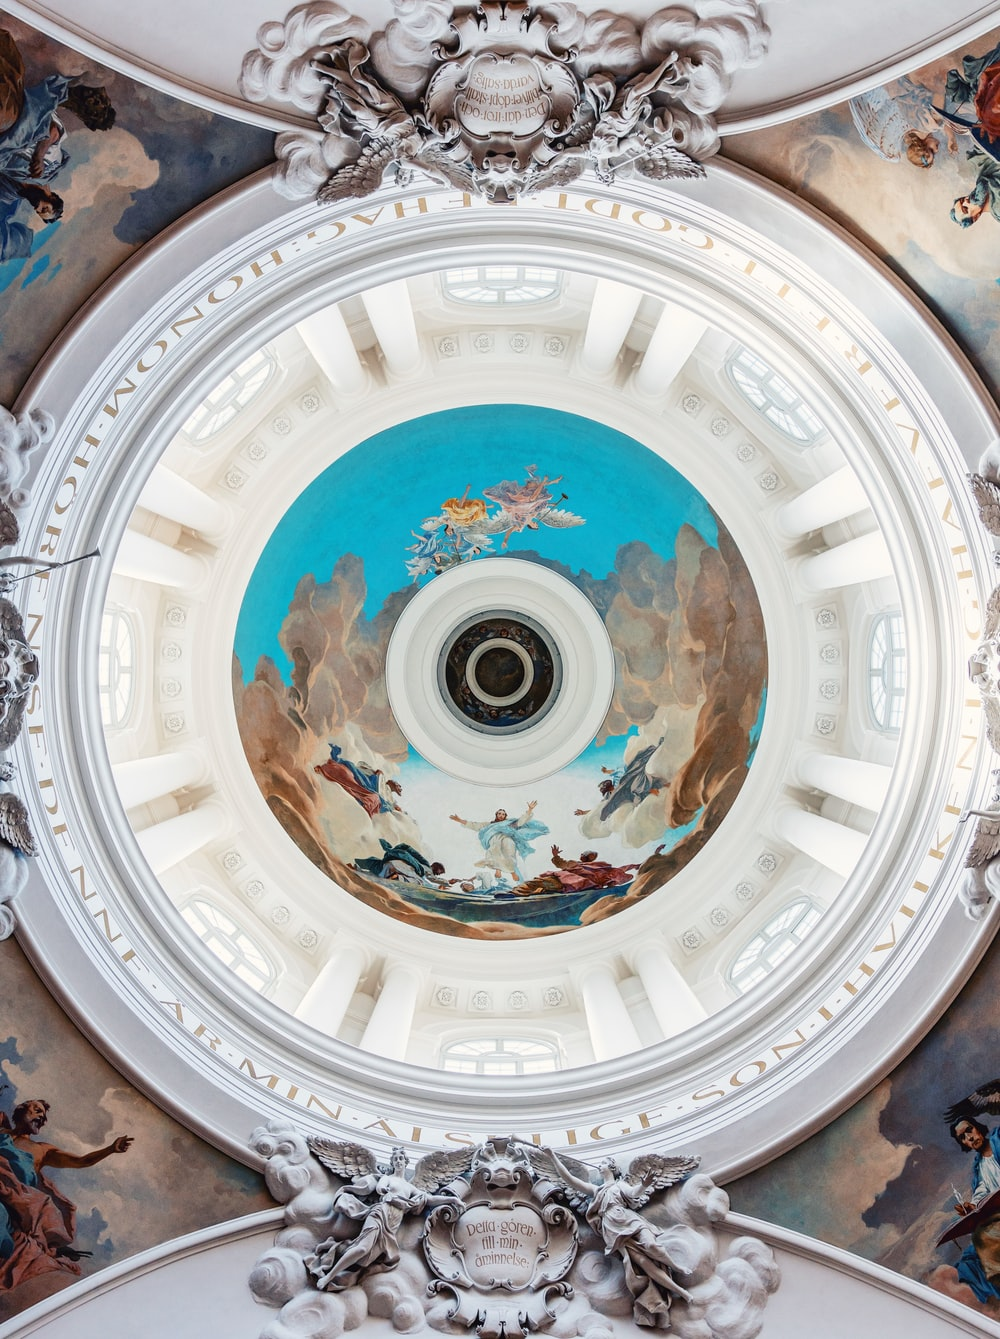 ceiling of a building with toile painting